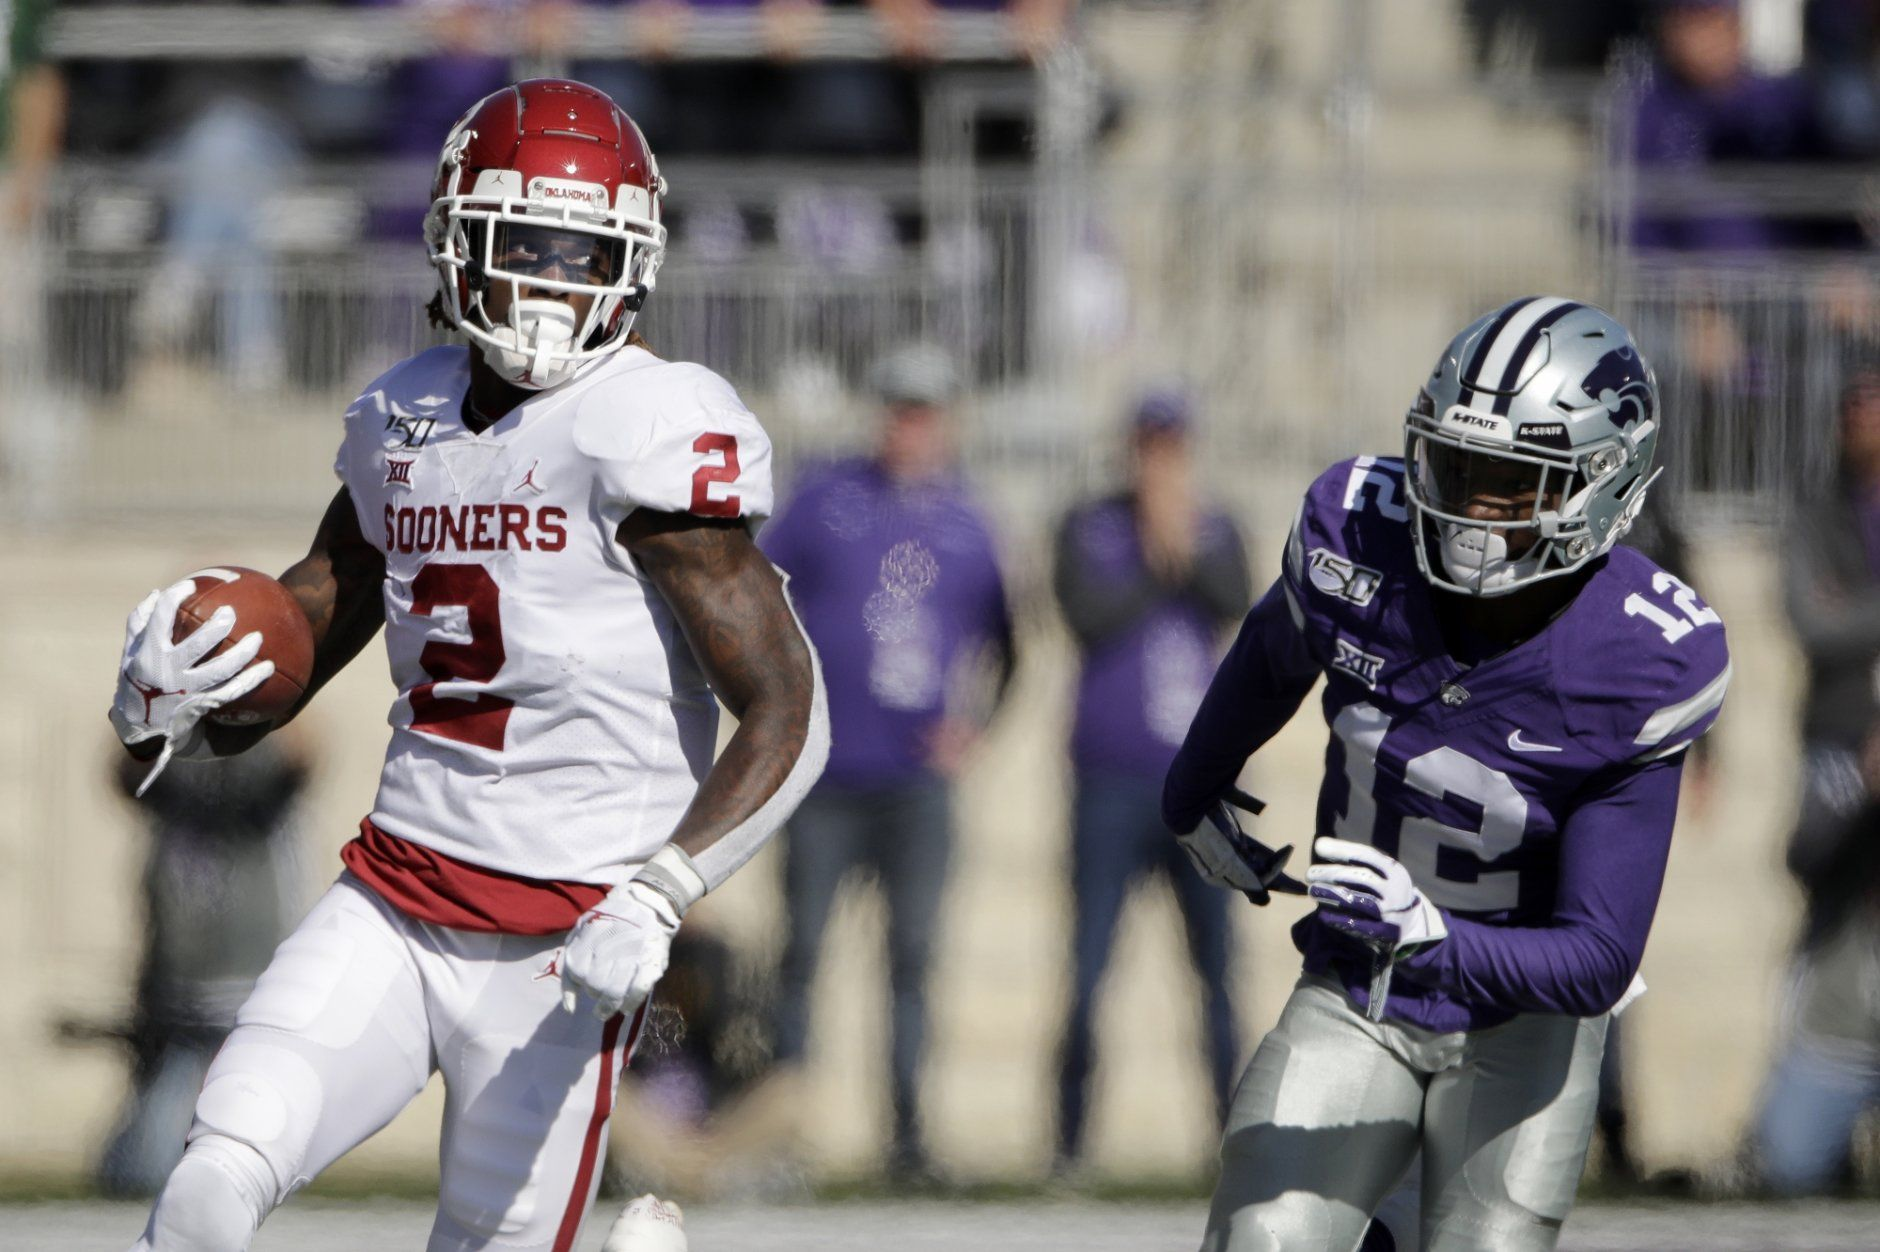 <p><strong>No. 9 Oklahoma (7-1):</strong> Win out, win Big 12 title game</p> <p>OU was rolling until the stumble in Manhattan, Kansas, but the Sooners still control their own Big 12 destiny. They've got Baylor looming in Waco in two weeks and Bedlam in Stillwater to end the regular season. If they beat the Bears twice, they'll be a popular one-loss conference champion pick.</p>